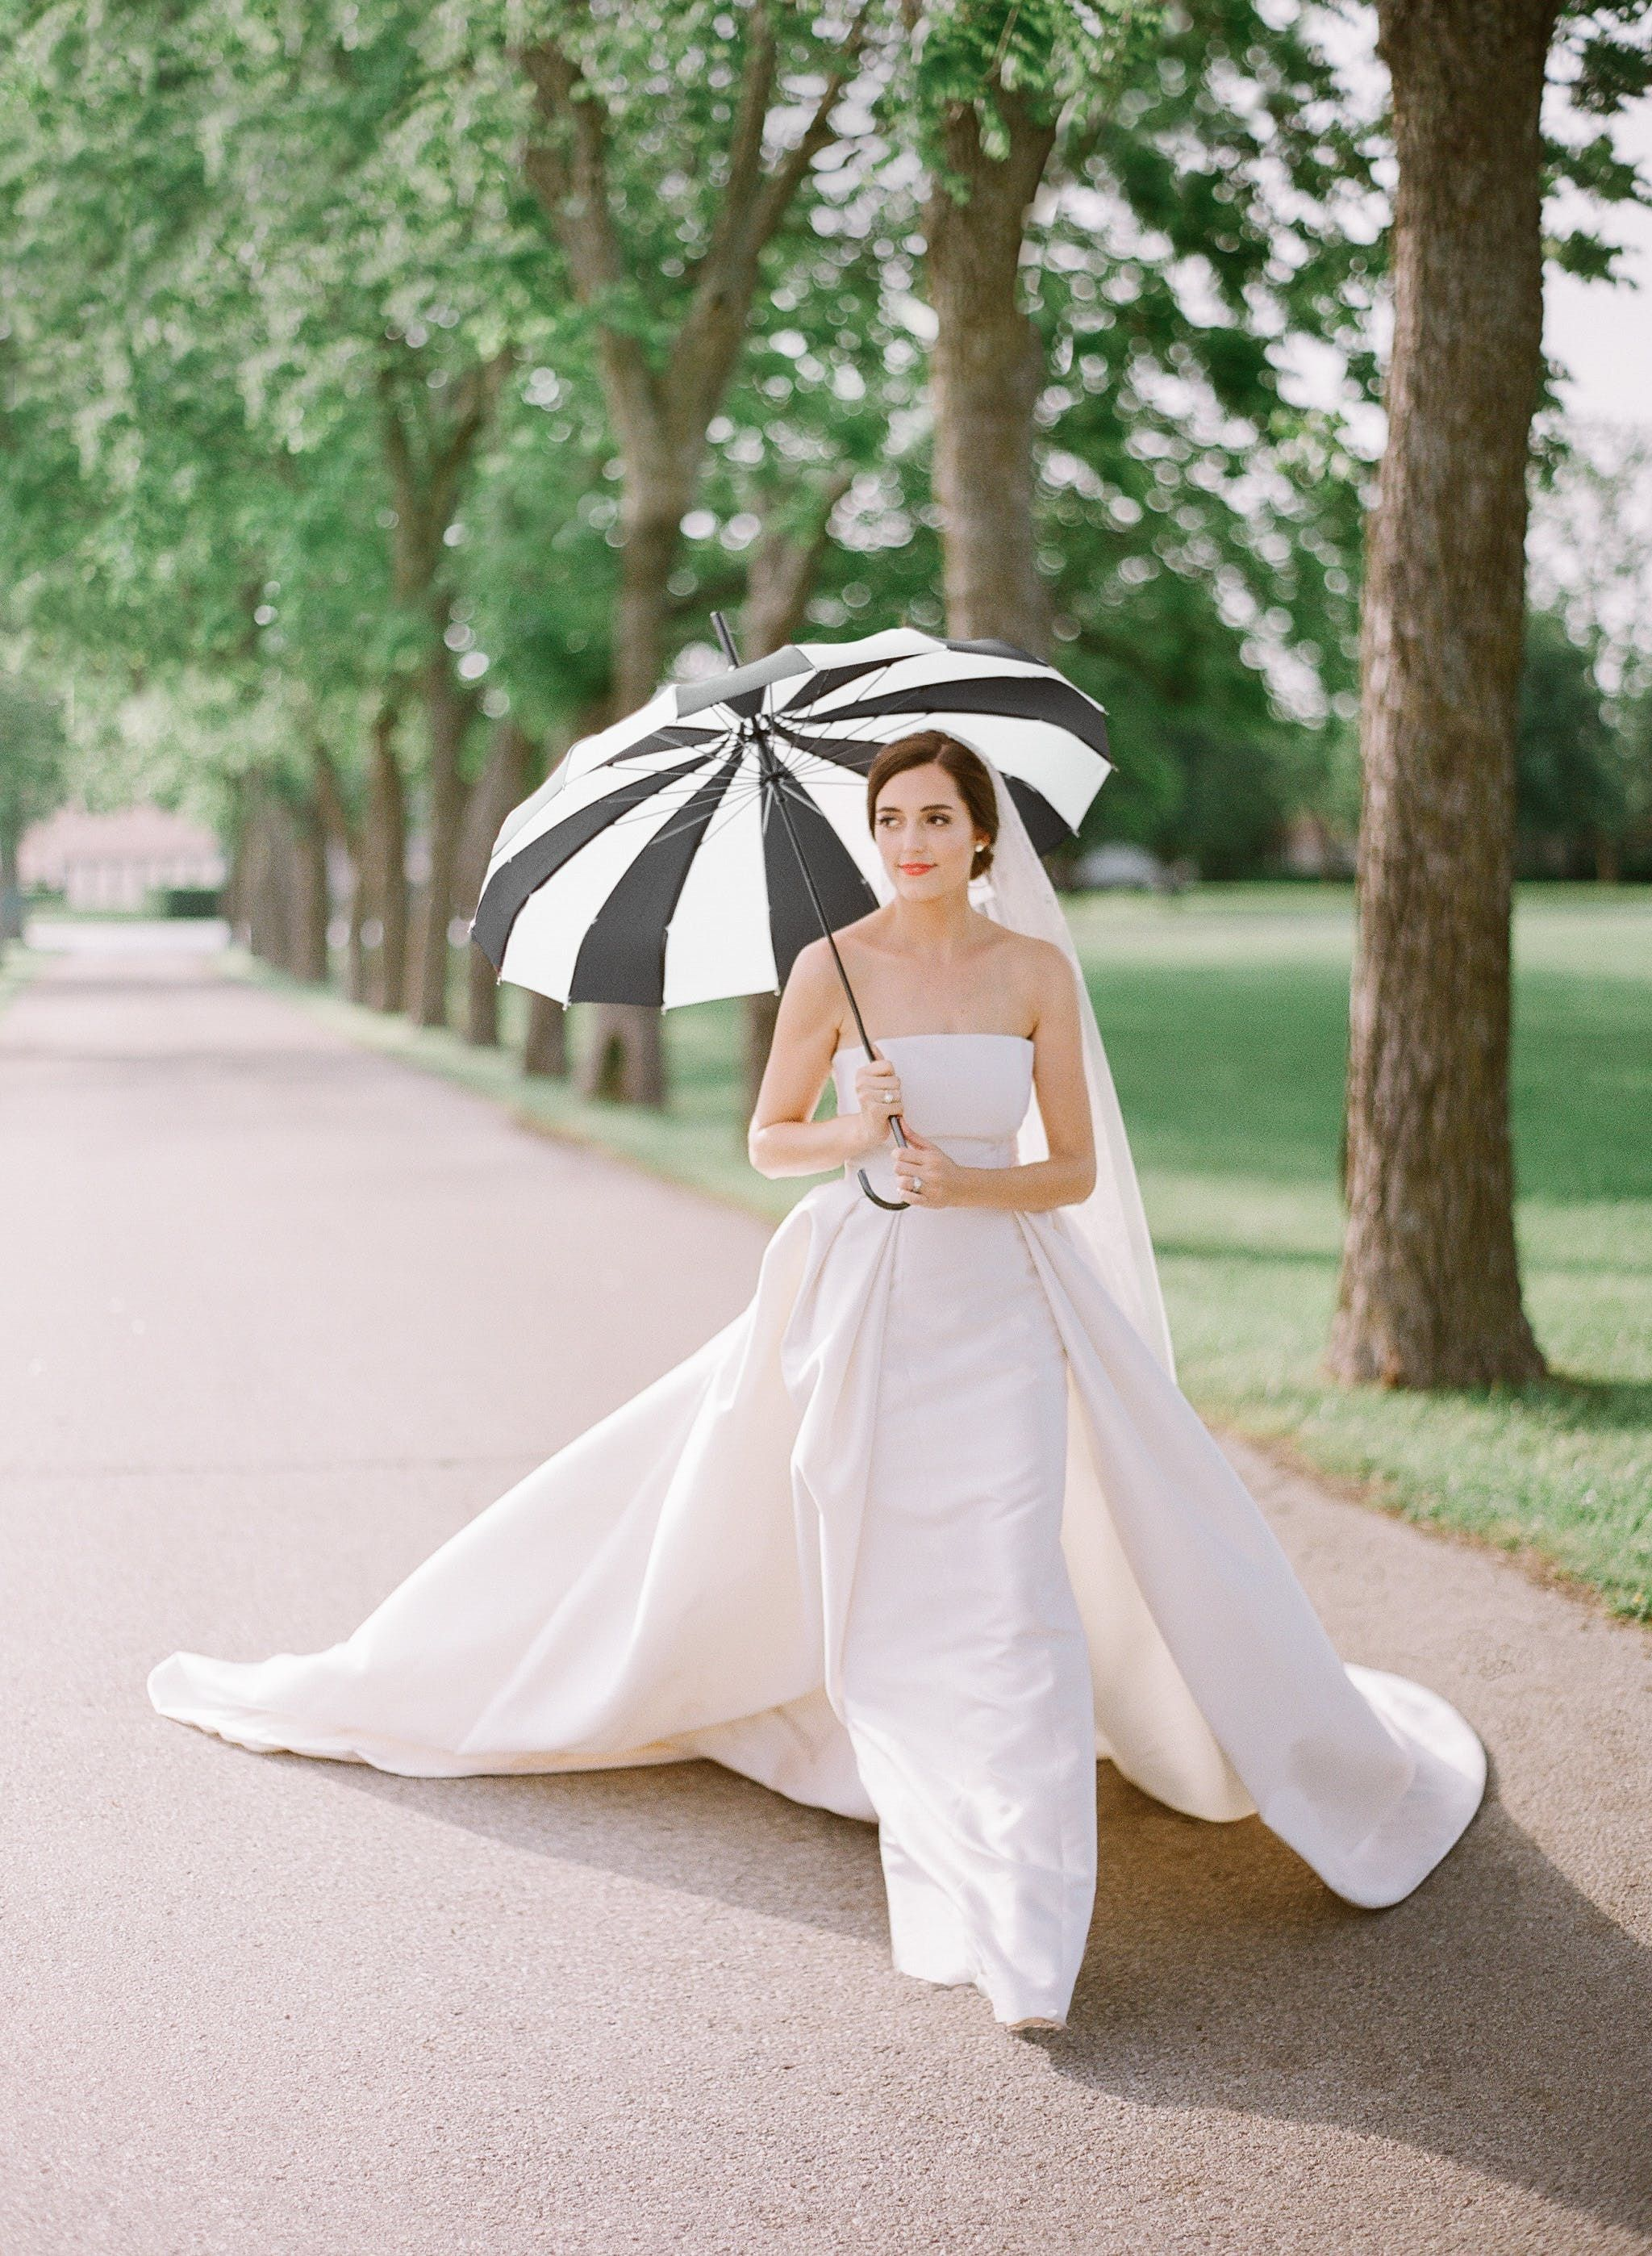 A minimalist approach to bridal fashion no matter your style